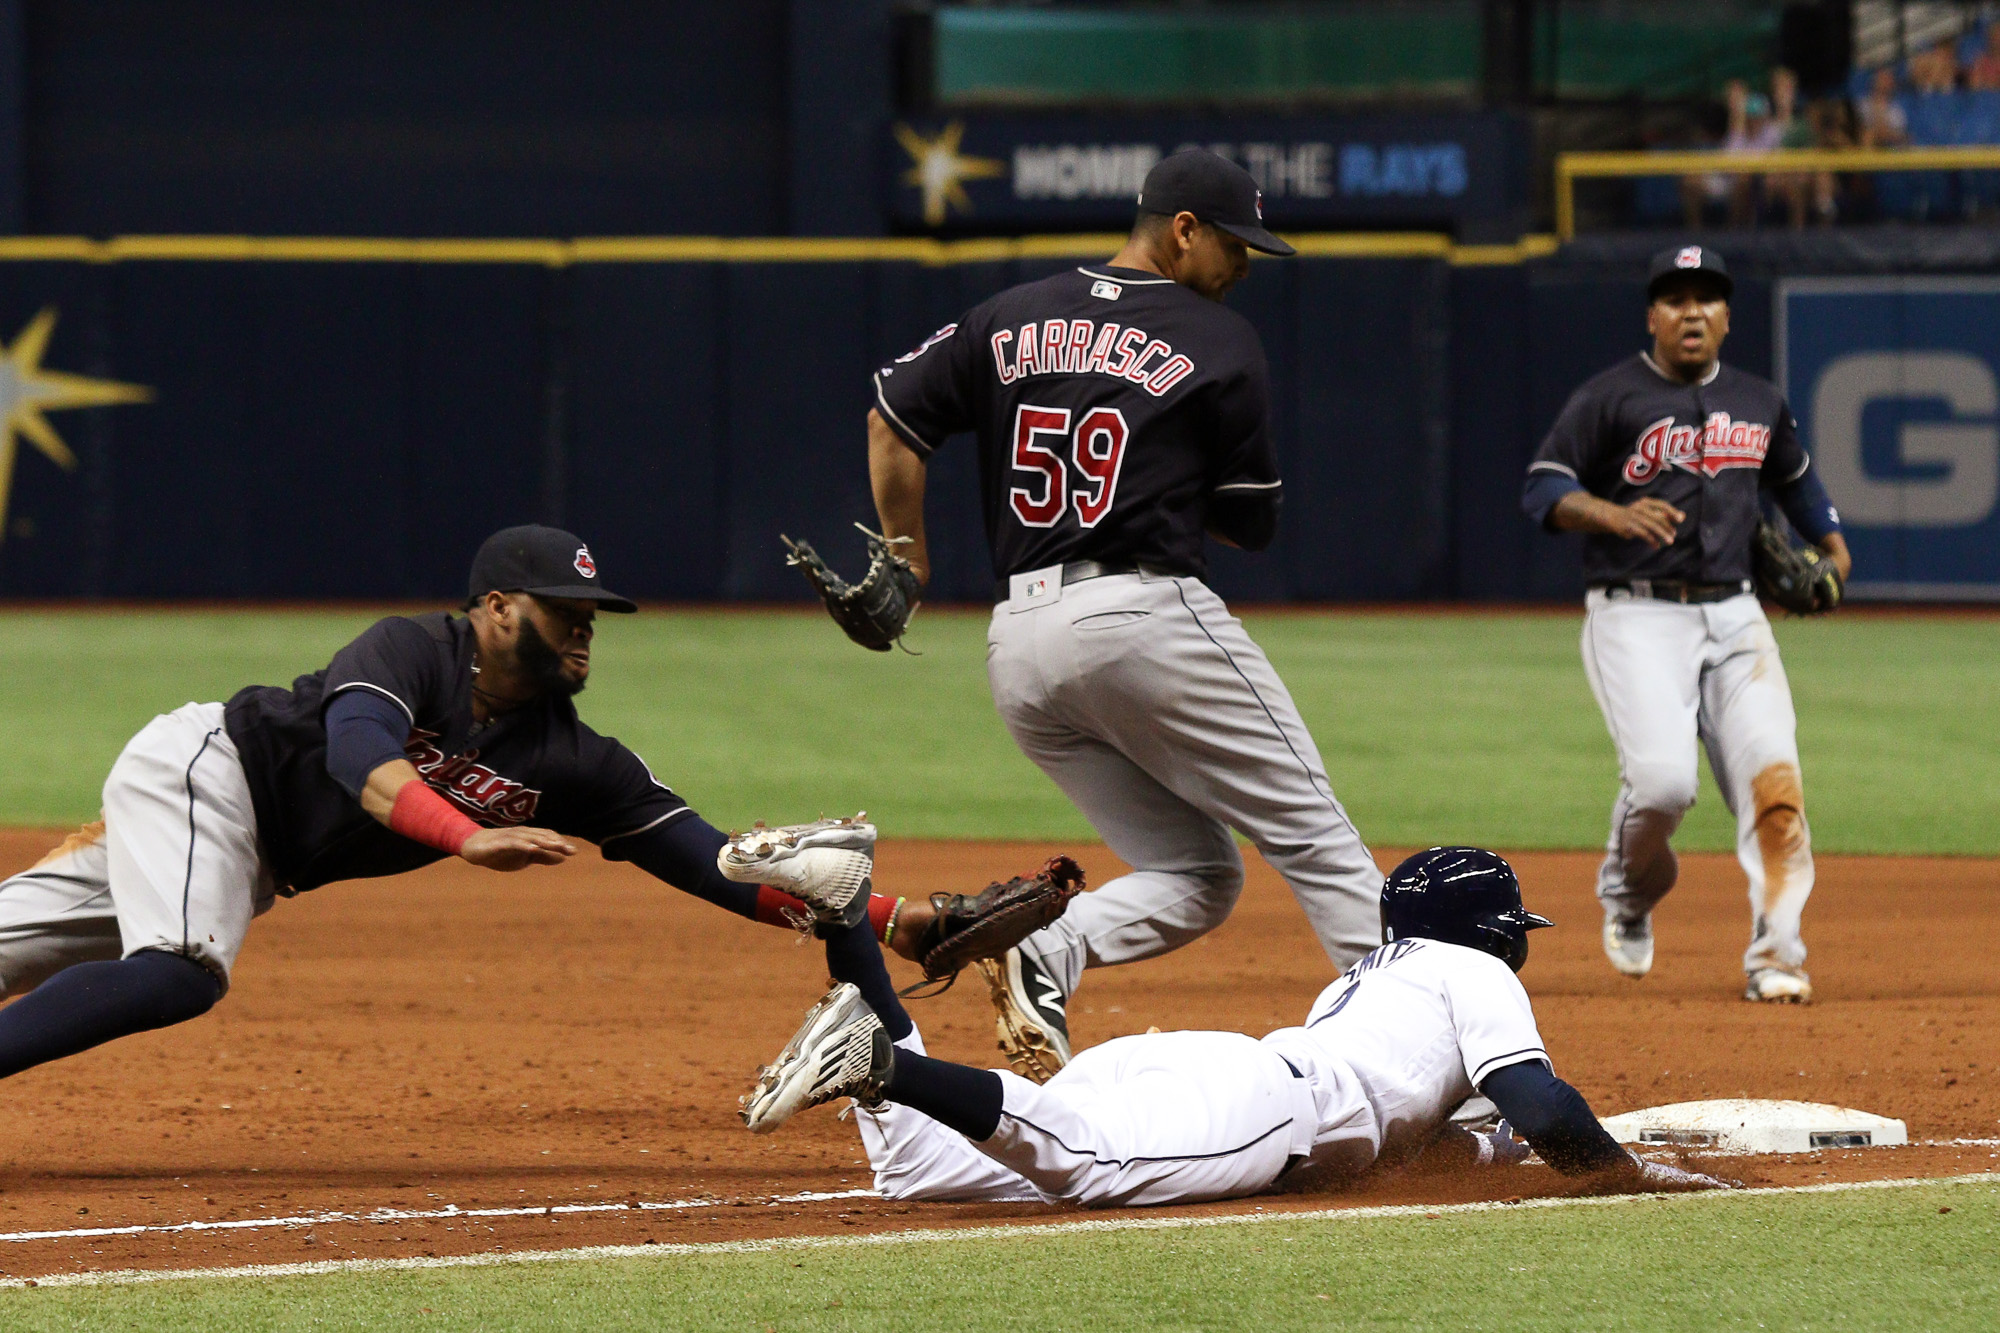 Smith safely slides into first in the 8th/ANDREW J. KRAMER